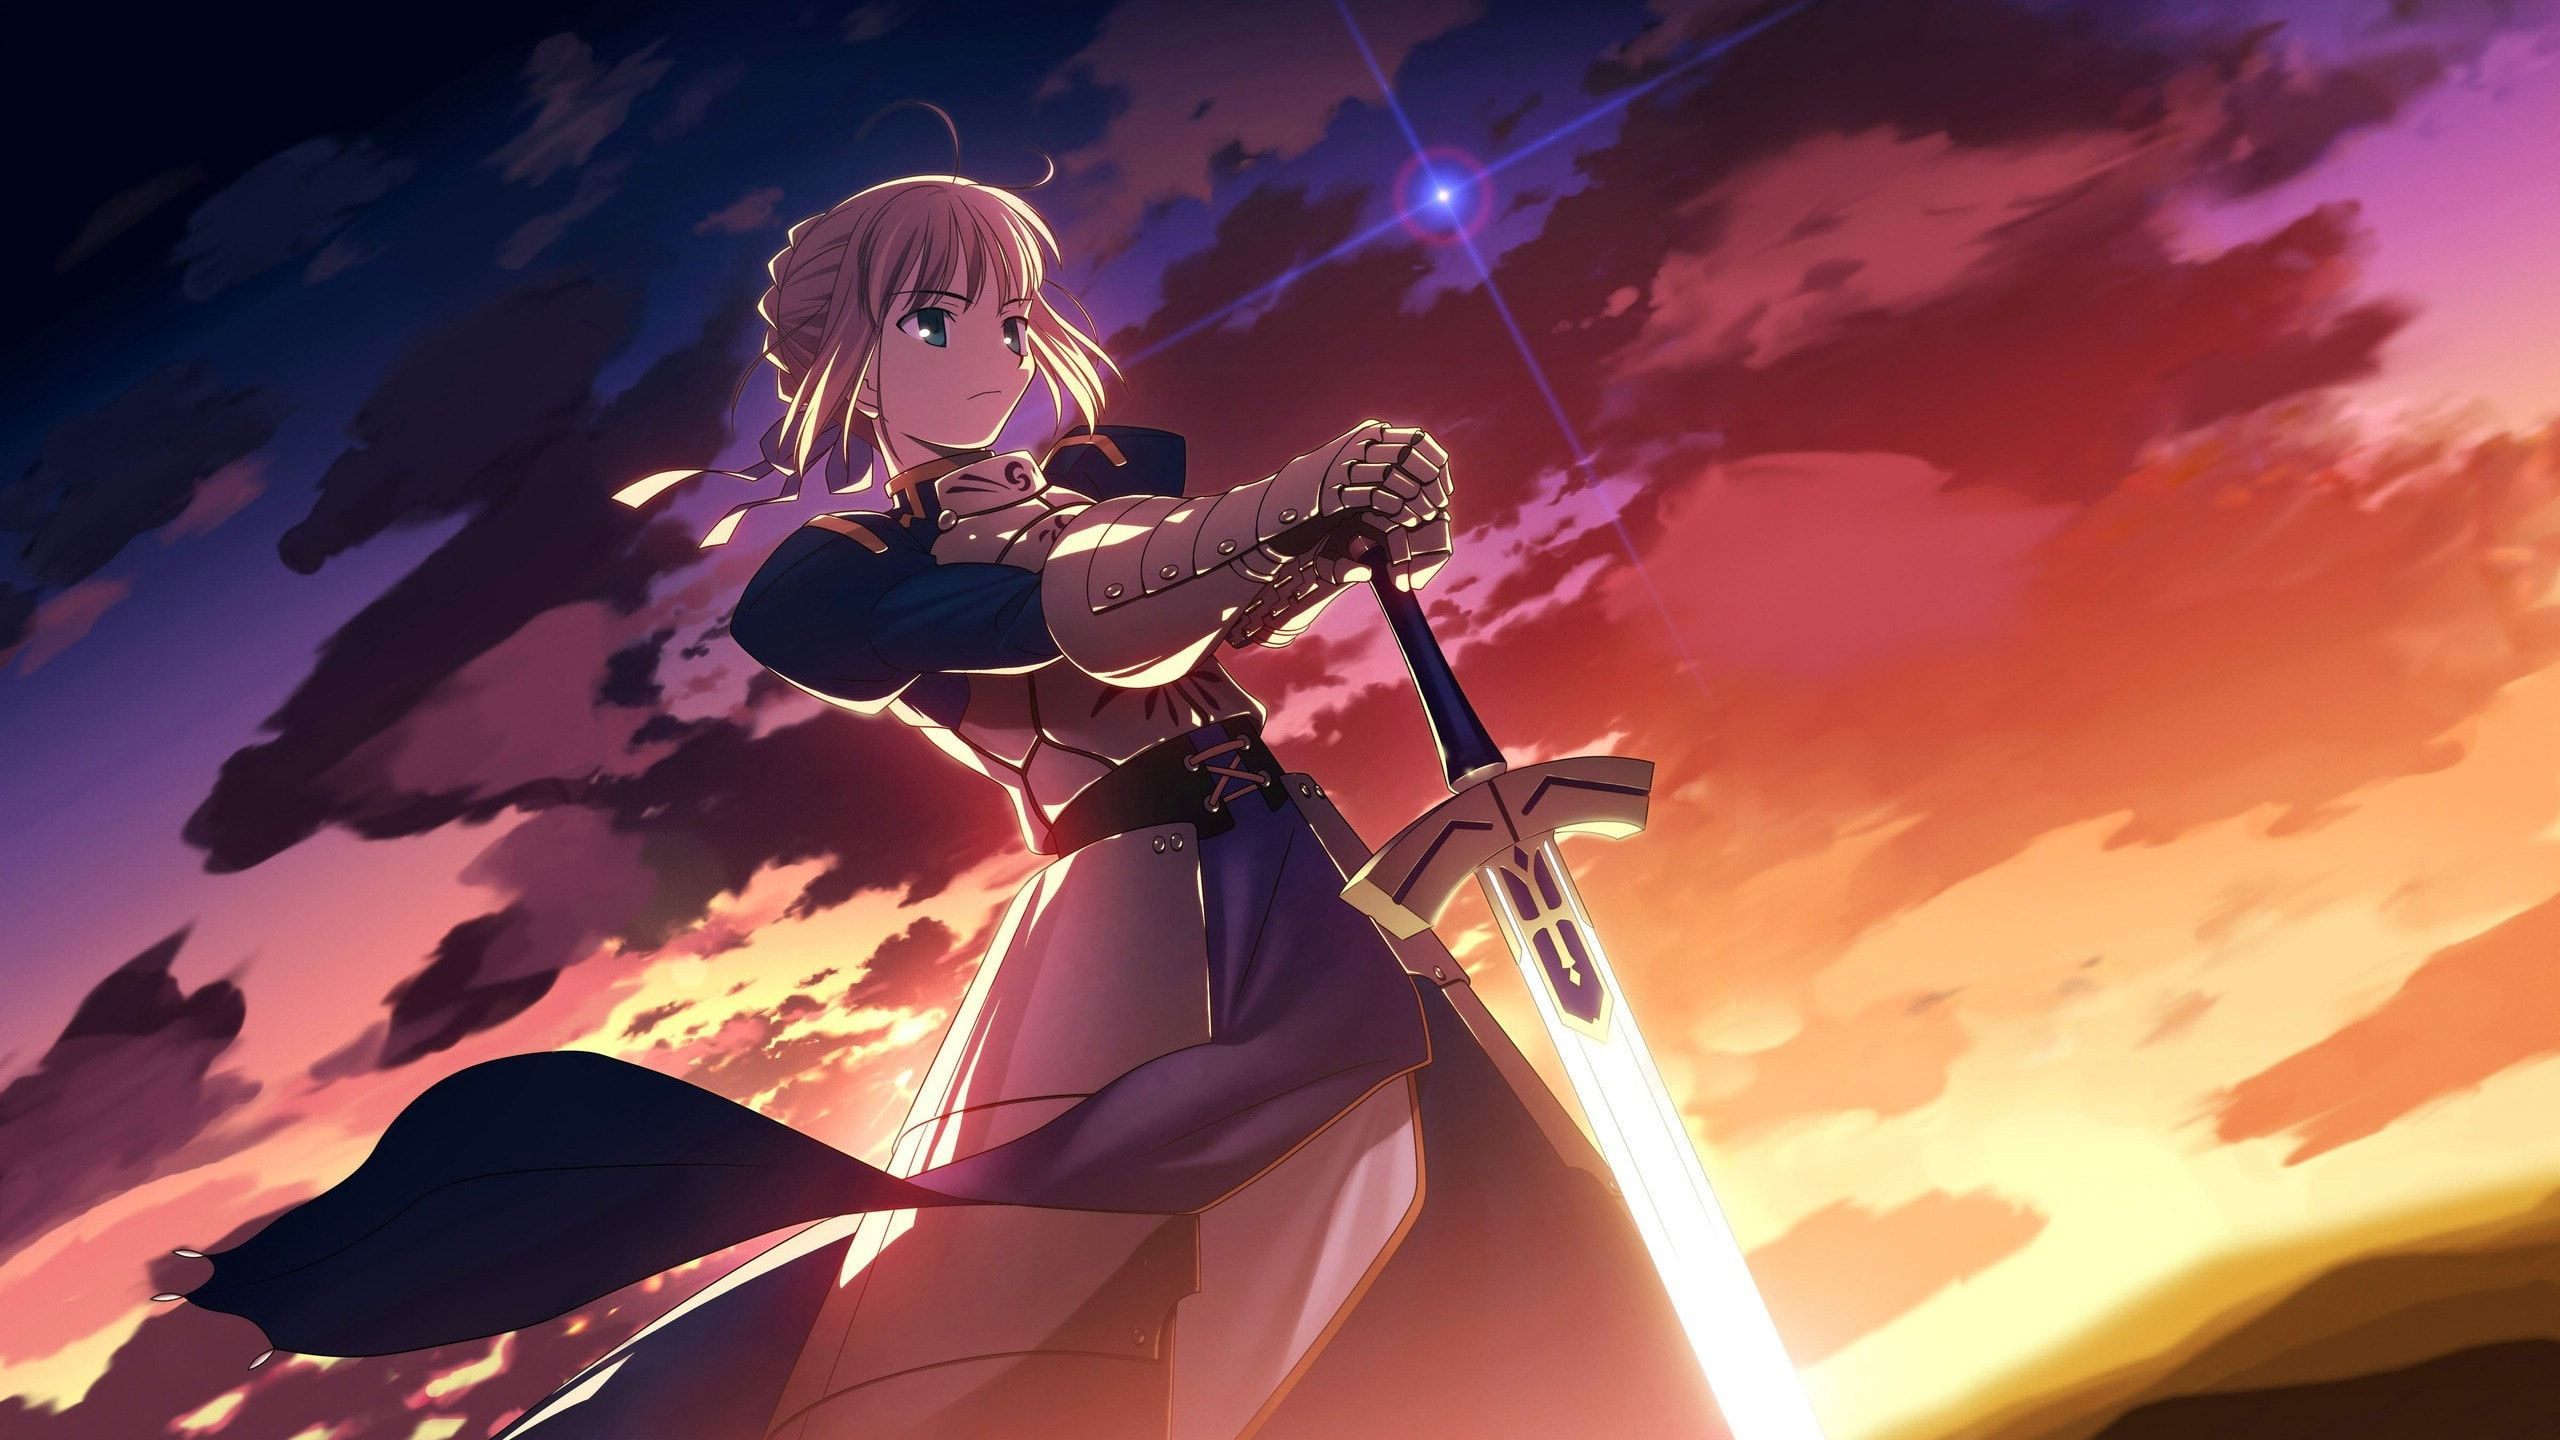 Fate Stay Night Saber Fate Stay Night Anime Fate Stay Night Anime